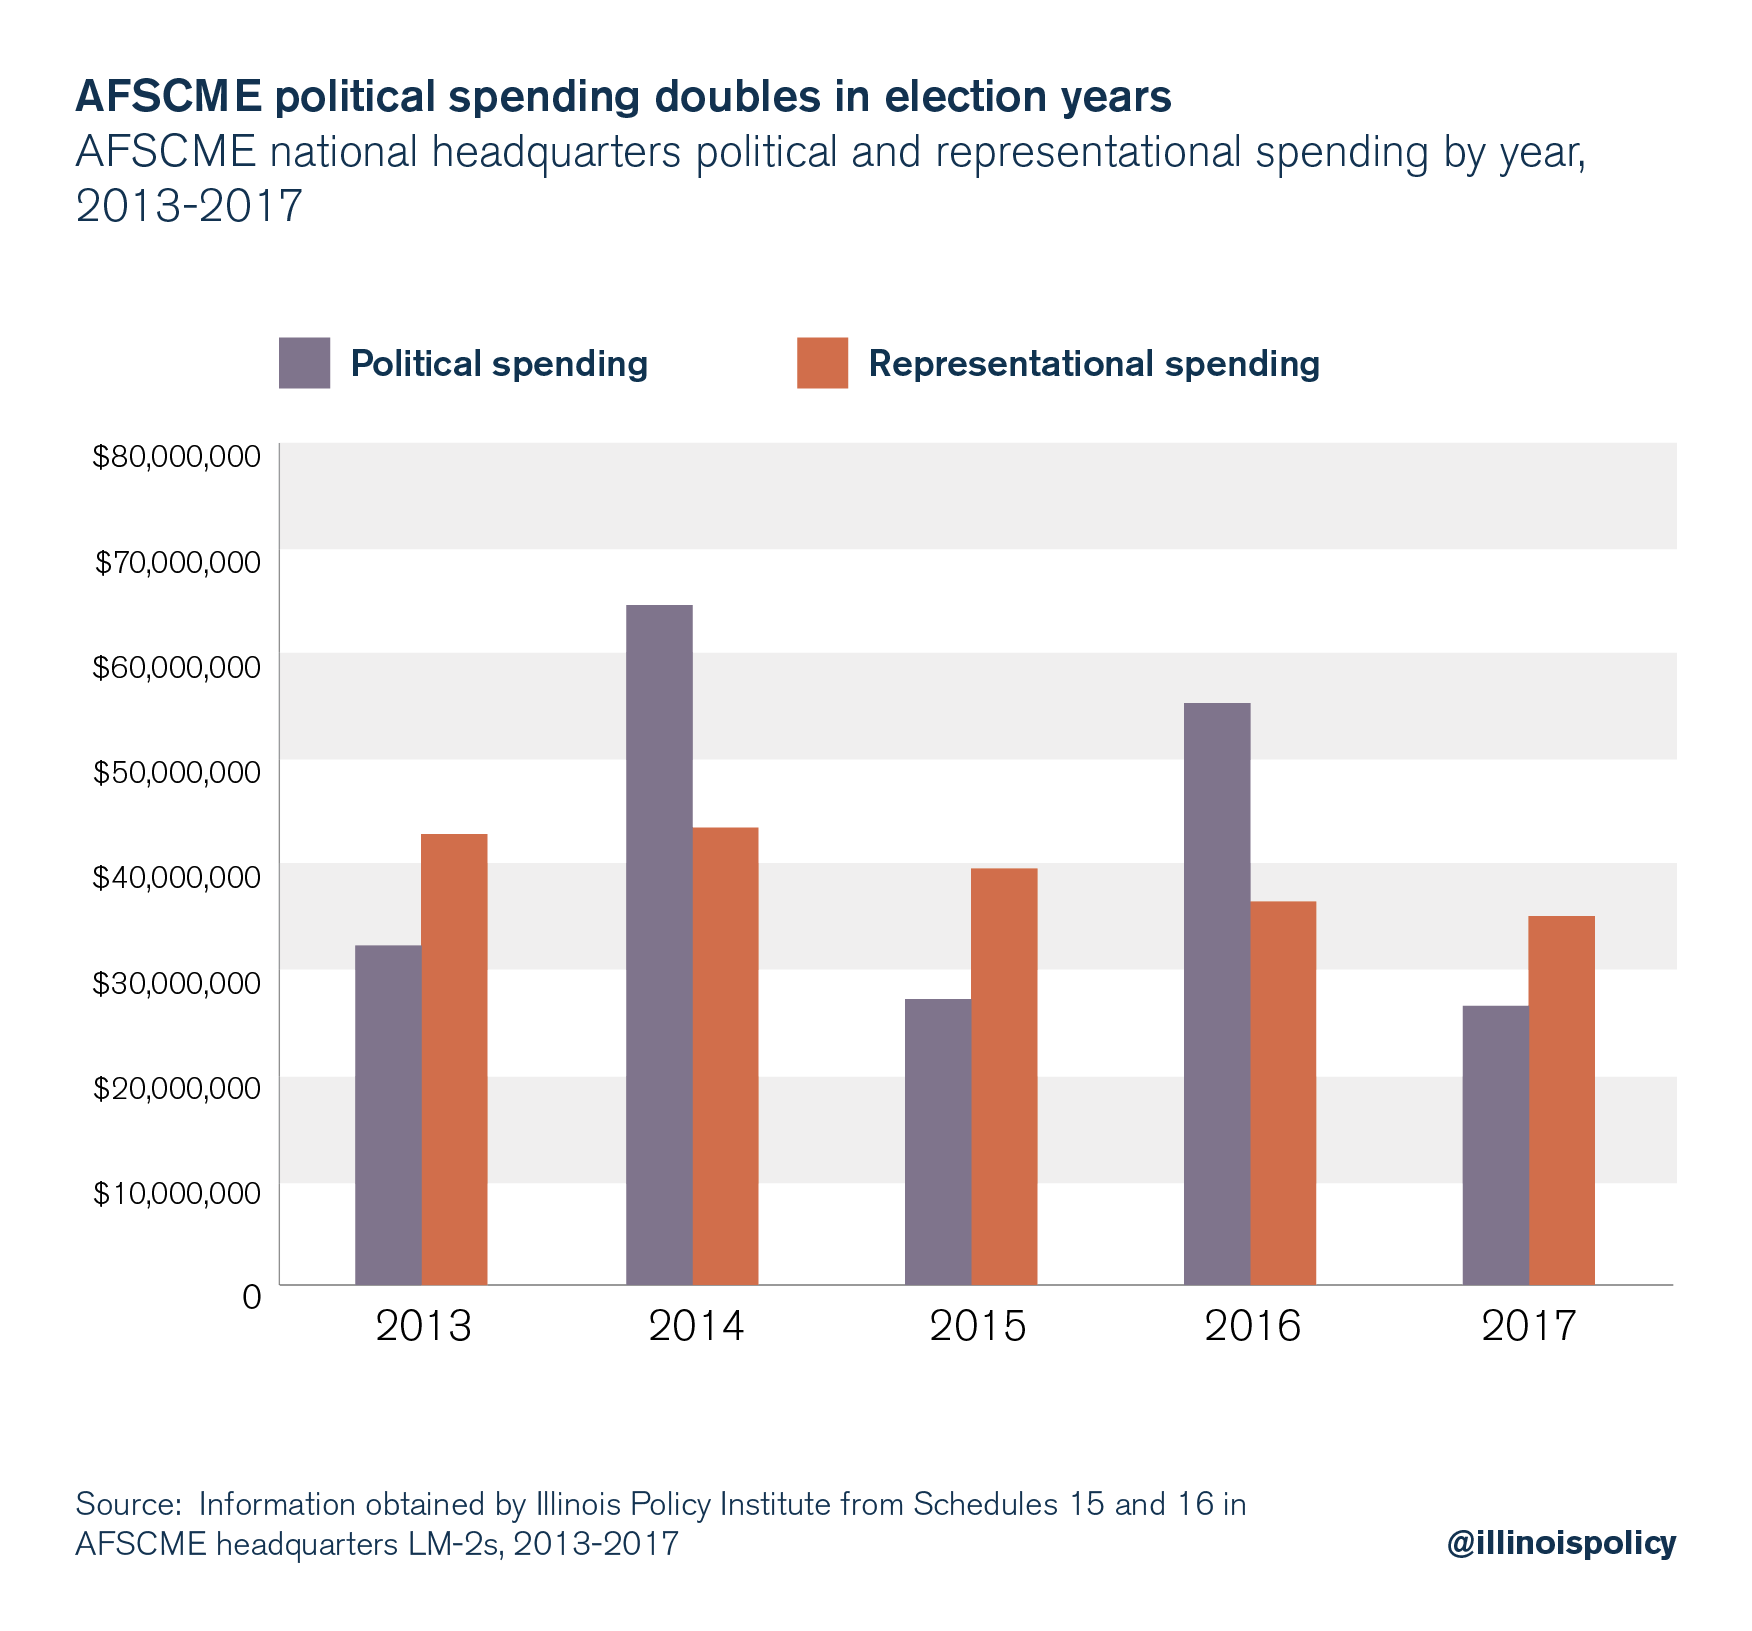 AFSCME political spending doubles in election years